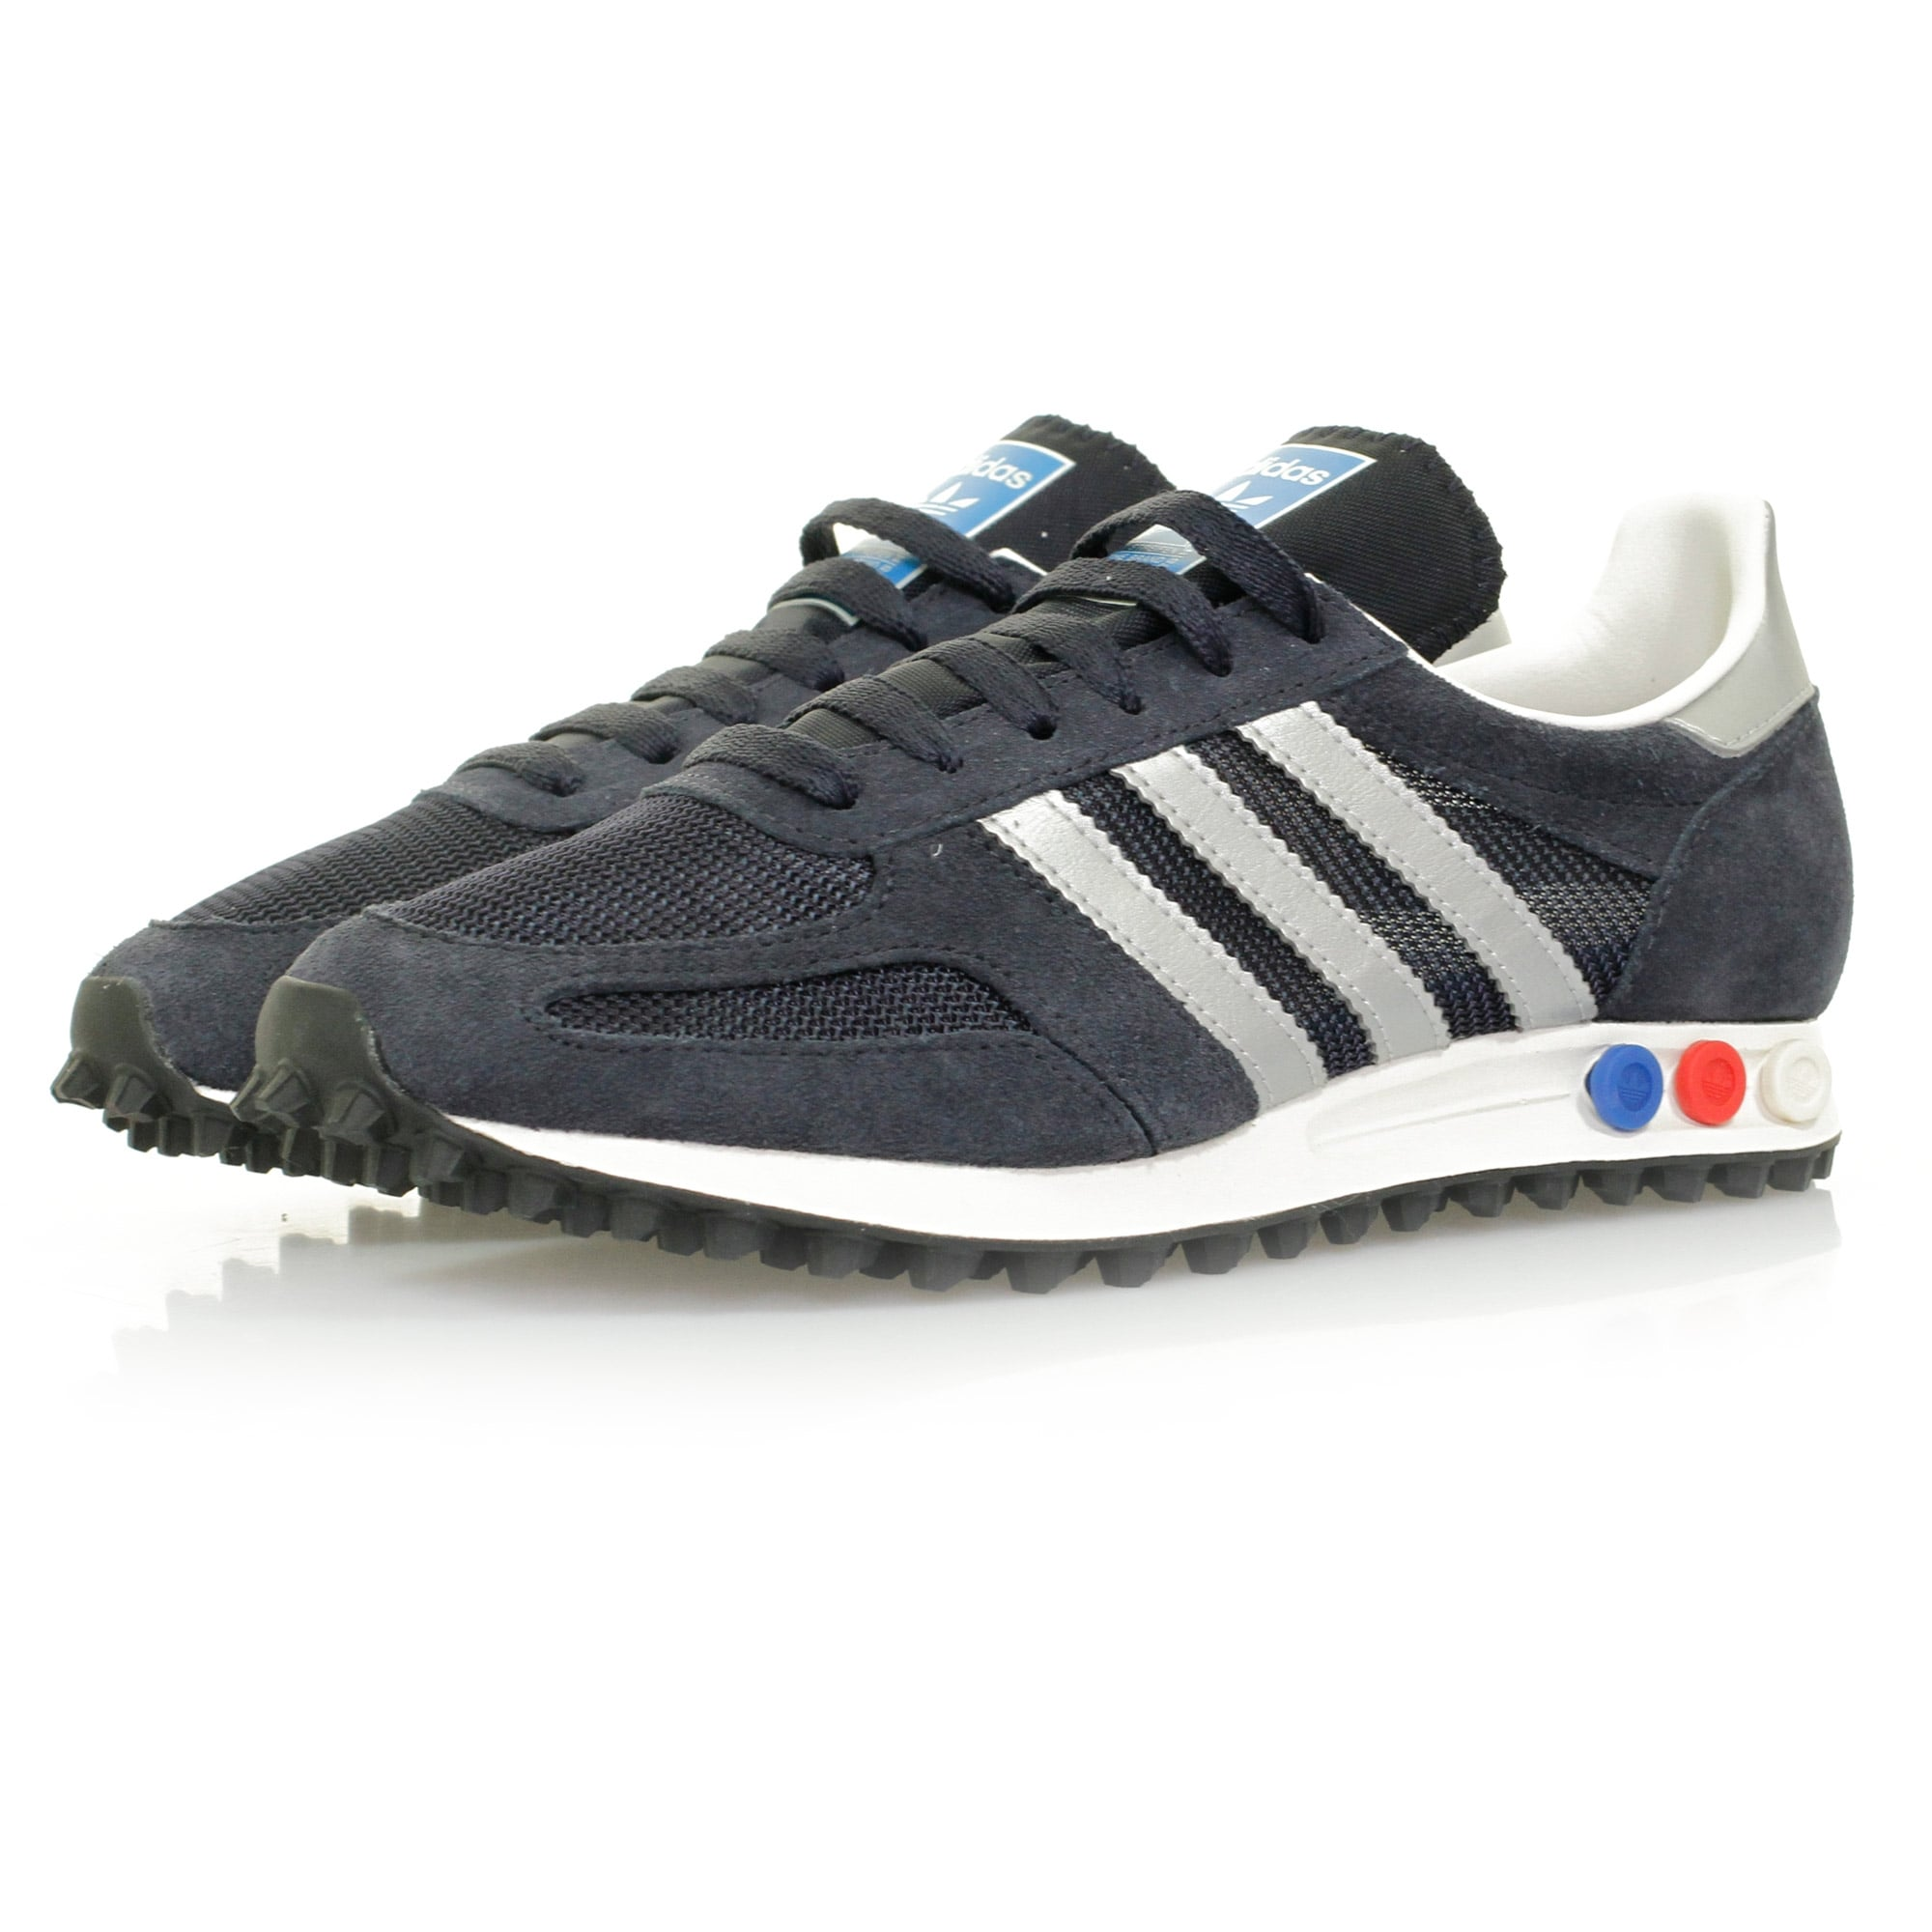 adidas originals sneakers la trainer og navy shoe. Black Bedroom Furniture Sets. Home Design Ideas